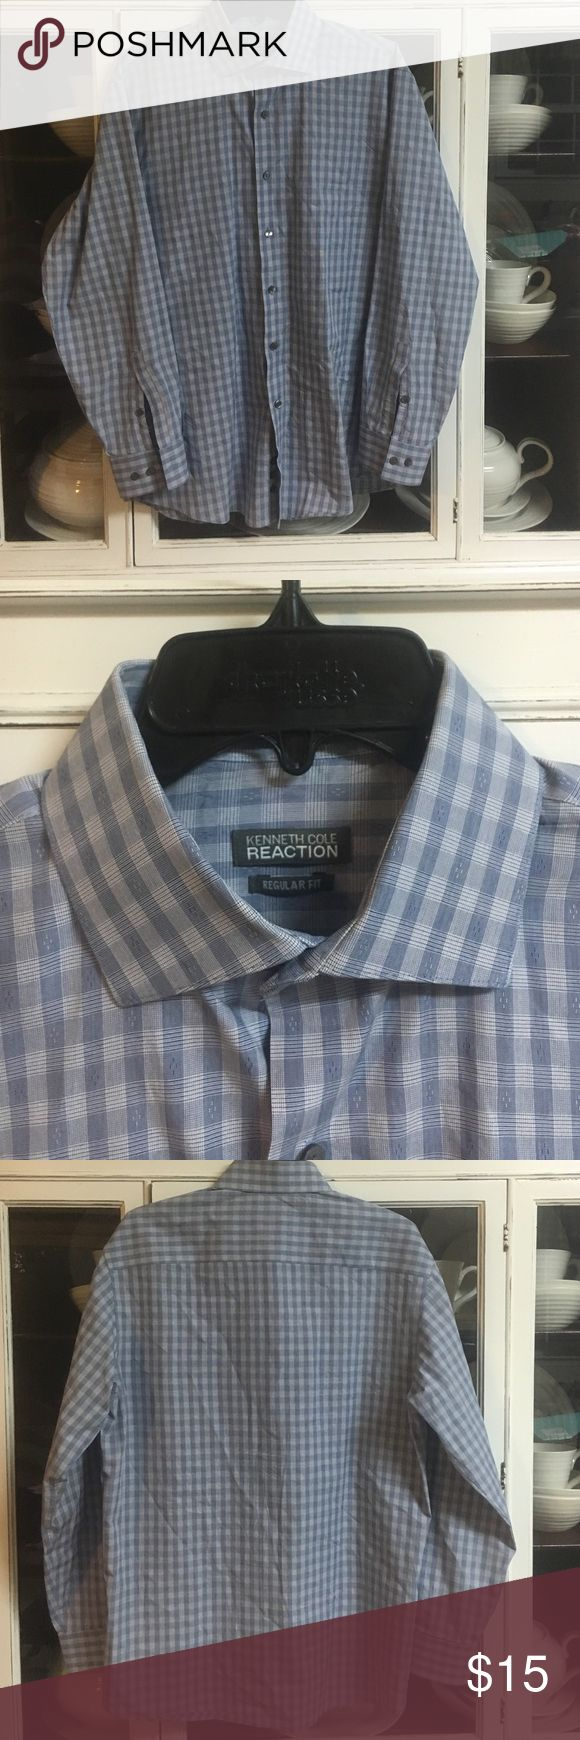 NWOT Men's Kenneth Cole Reaction Blue Plaid Shirt NWOT- doesn't fit my fiancé! I absolutely love this shirt! In perfect condition. Kenneth Cole Reaction Shirts Dress Shirts